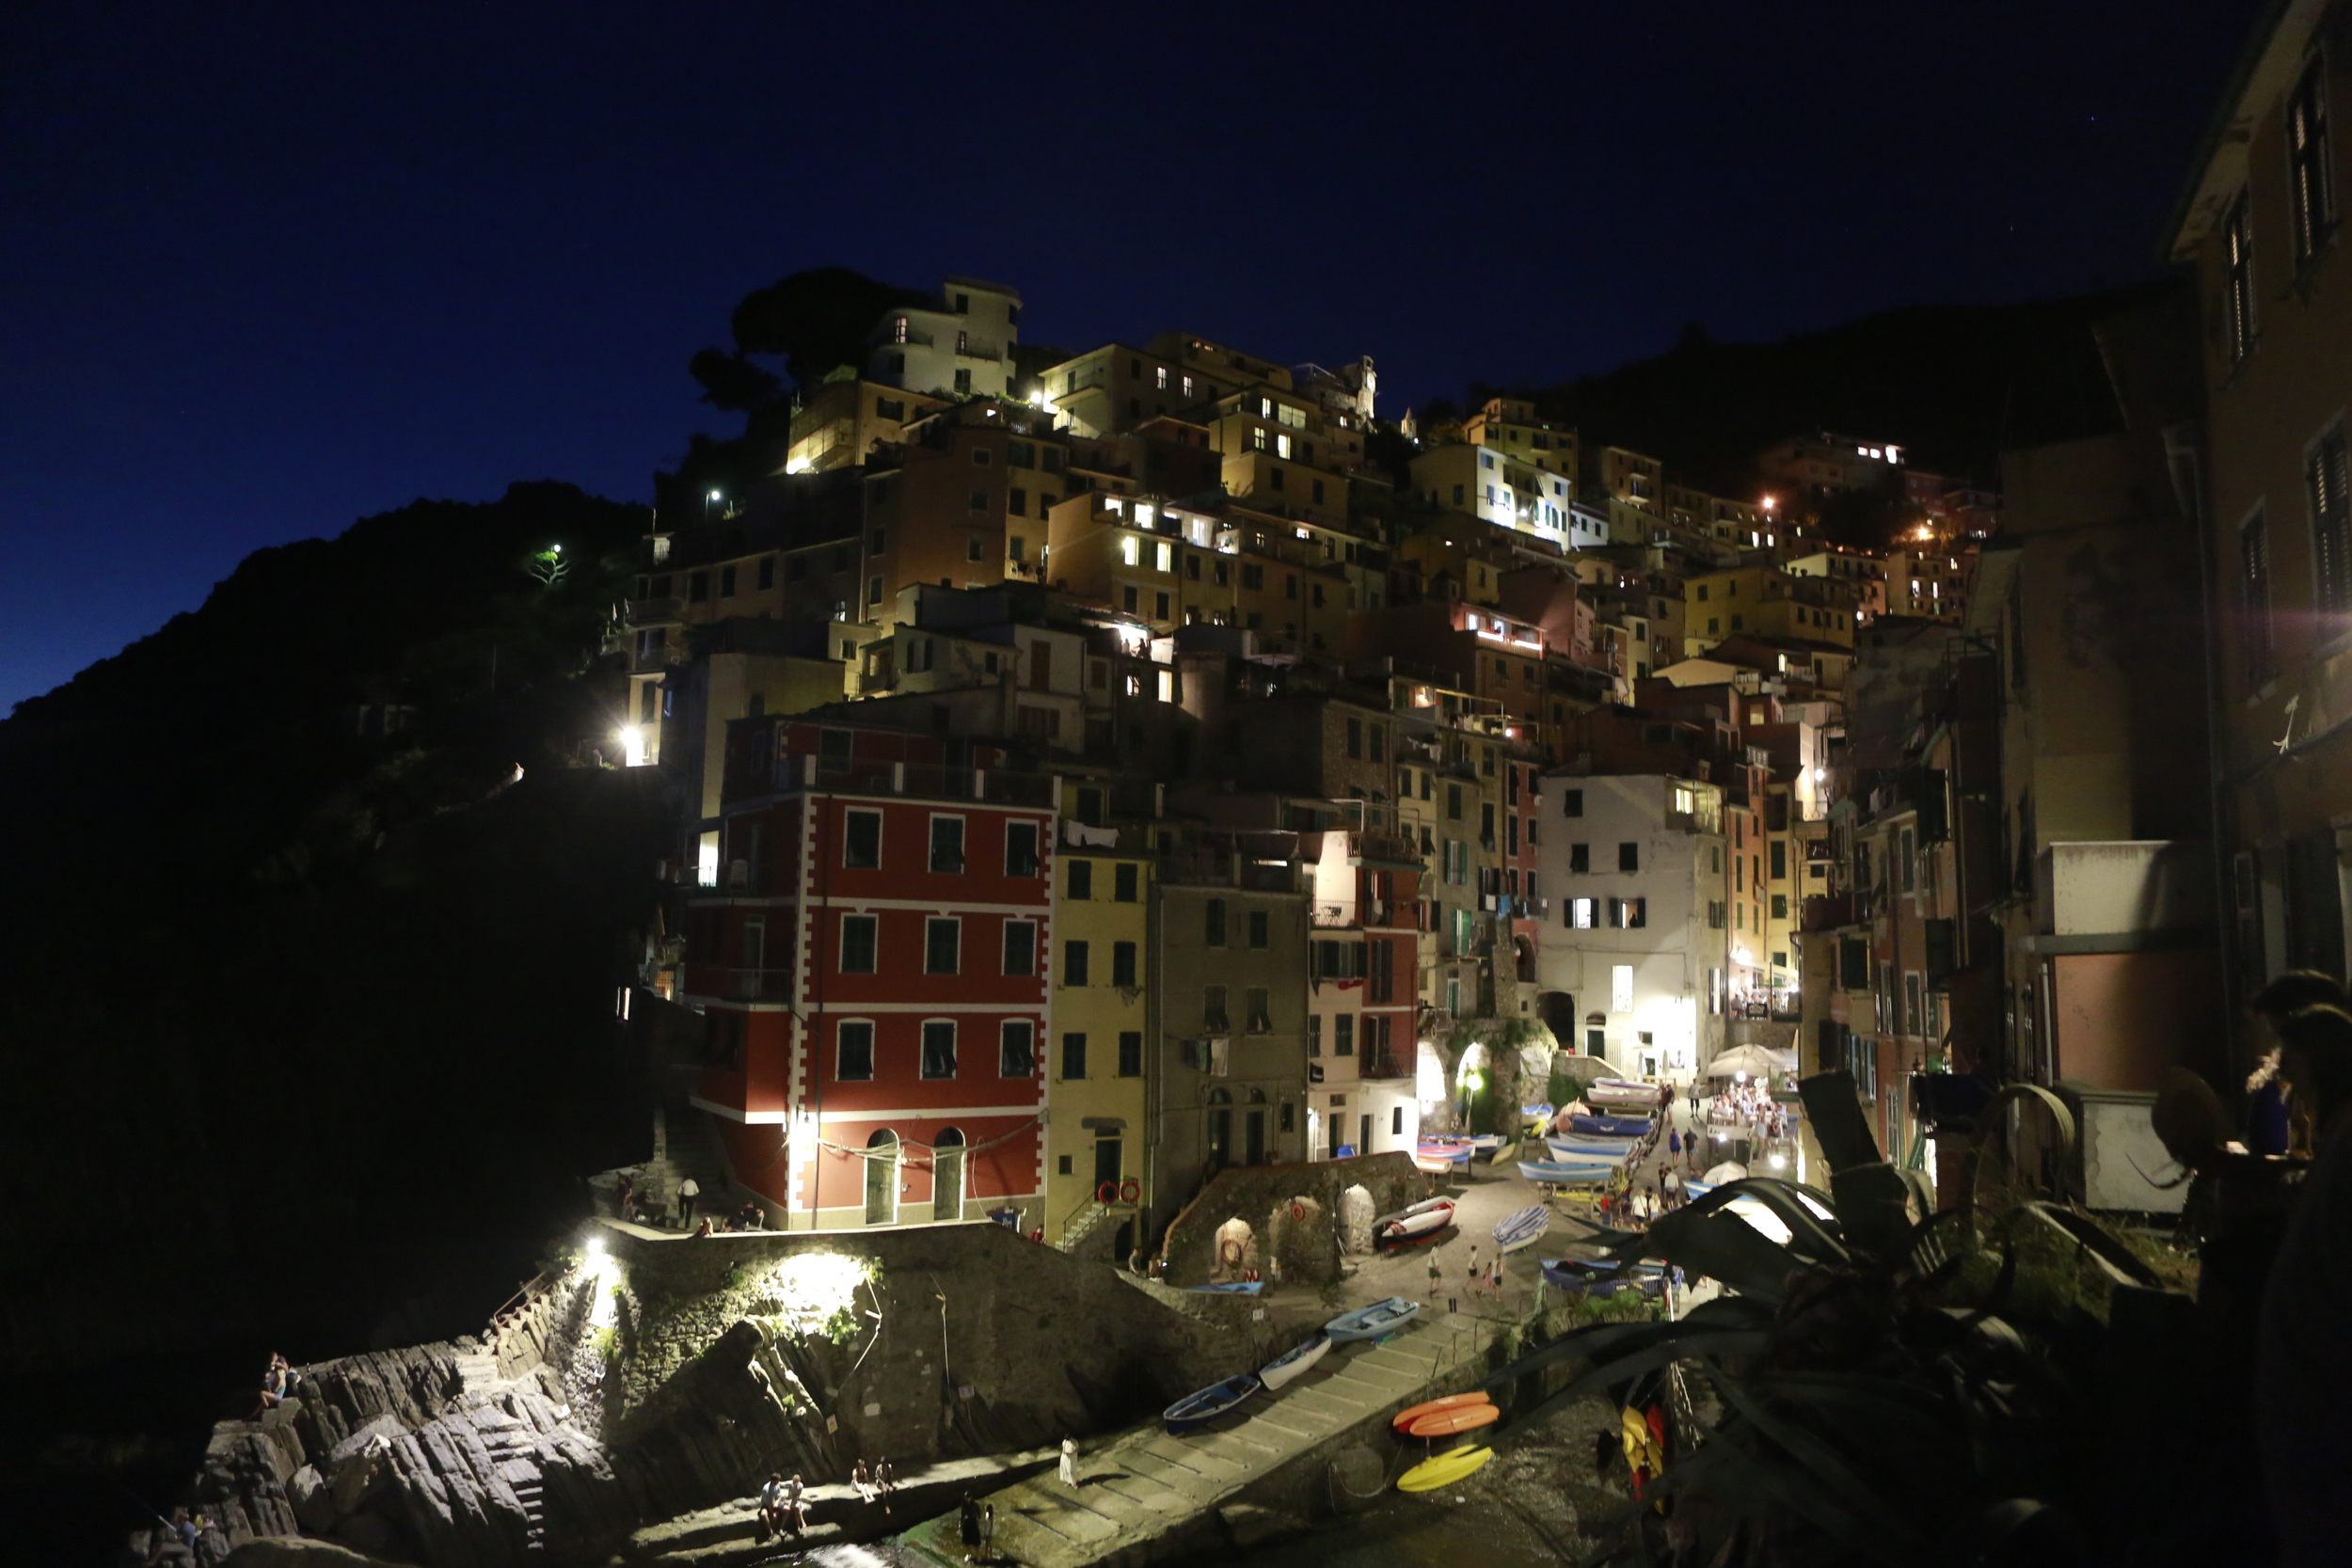 Riomaggiore at night. Click to view more pictures in Europe